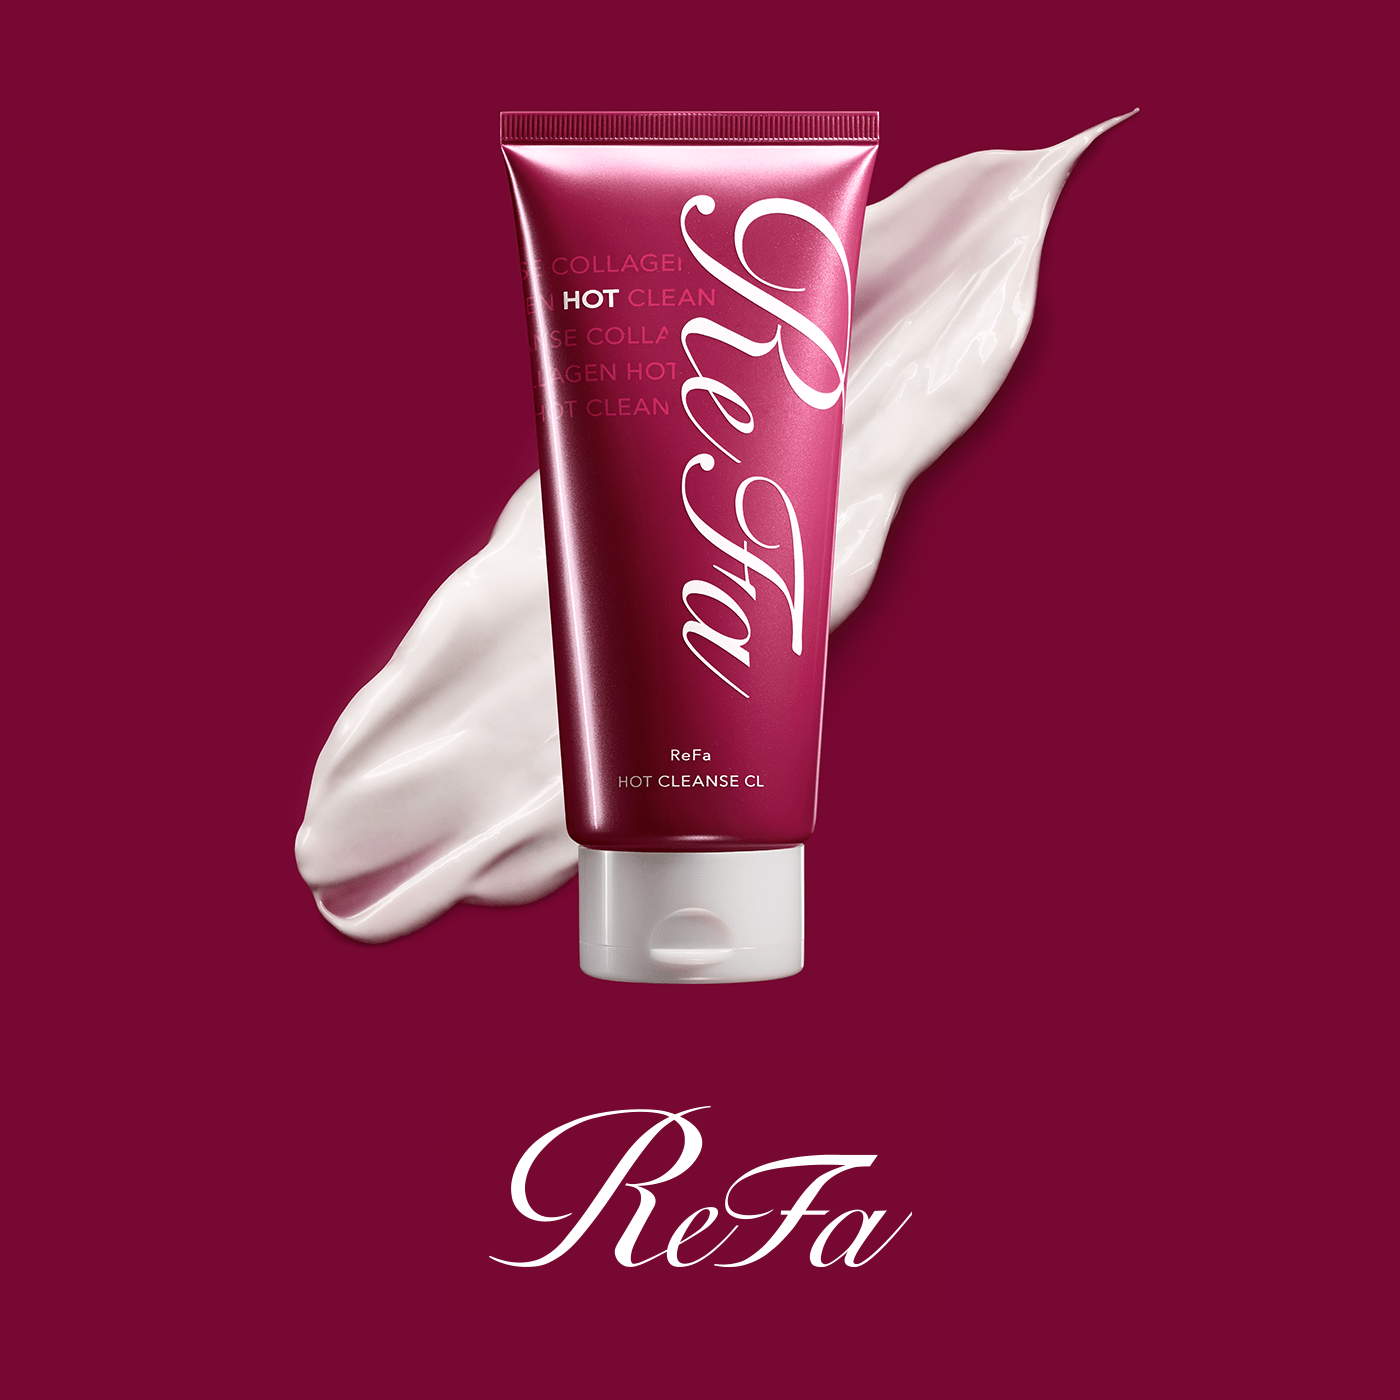 The new evolution in ReFa collagen beauty care. A rich thermal cleansing cream featuring two types of collagen. Introducing ReFa HOT CLEANSE CL.